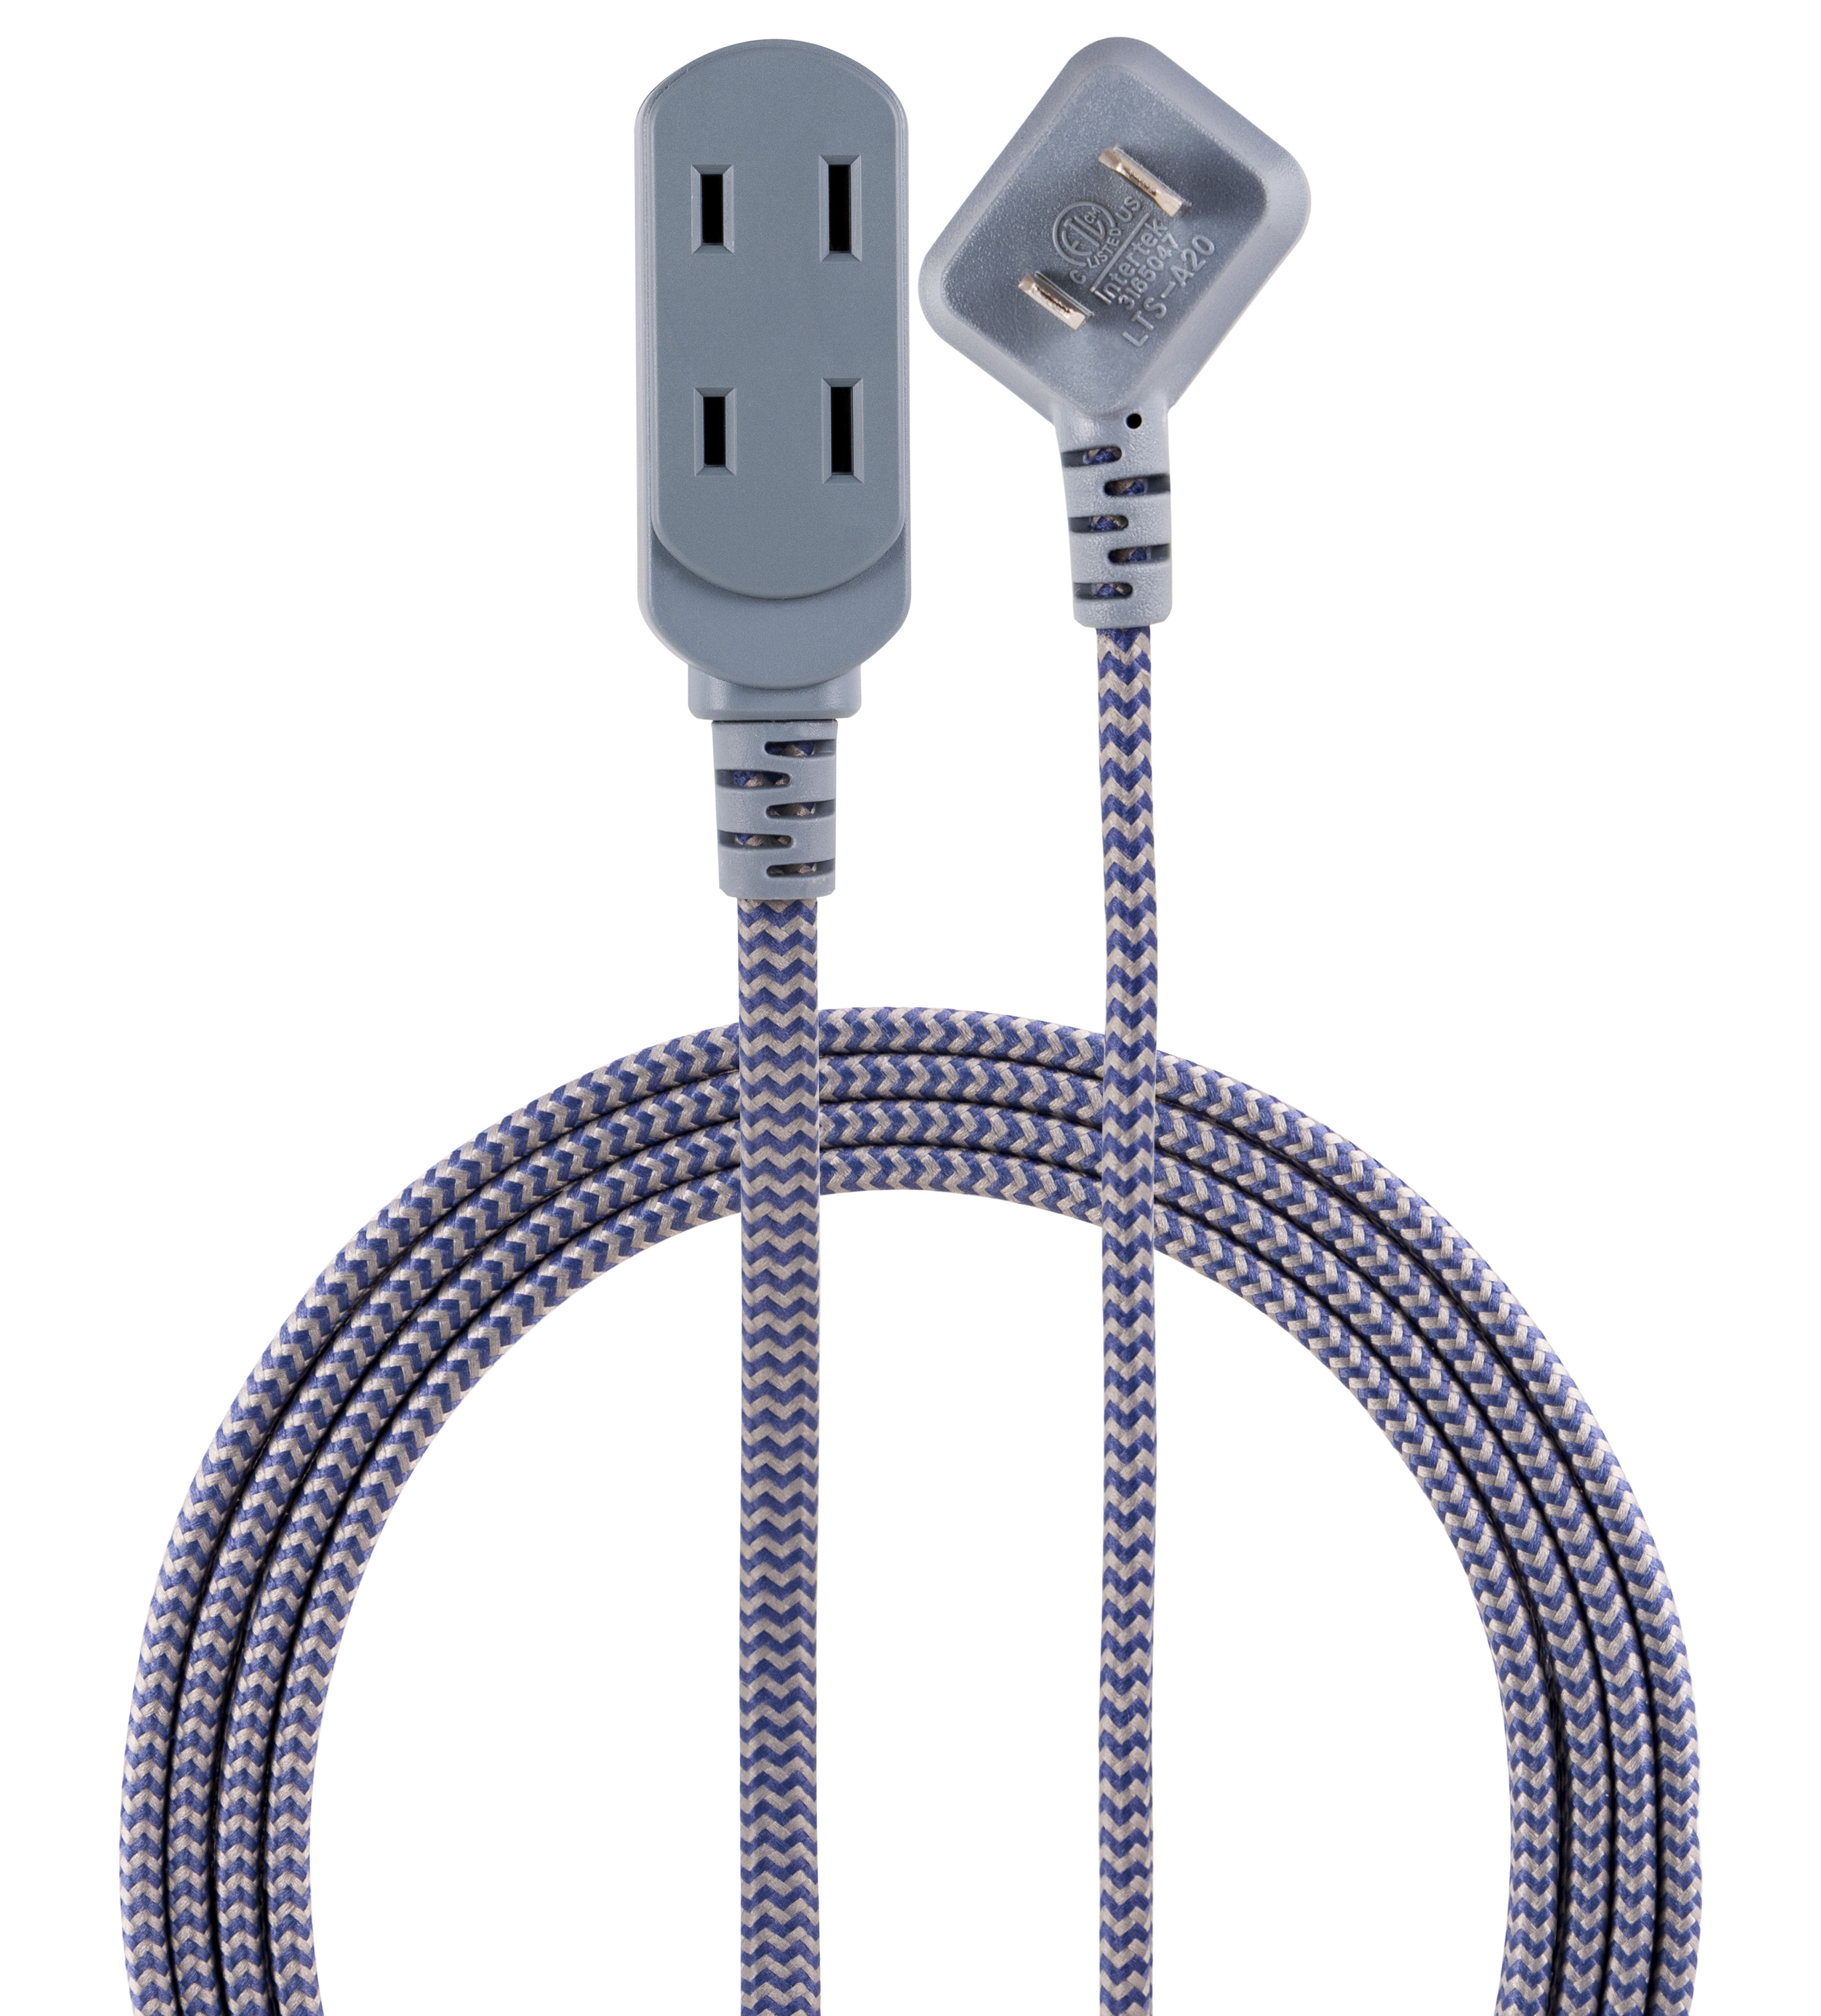 Hyper Tough 9 Foot Low Profile Gray and White Braided Indoor Extension Cord